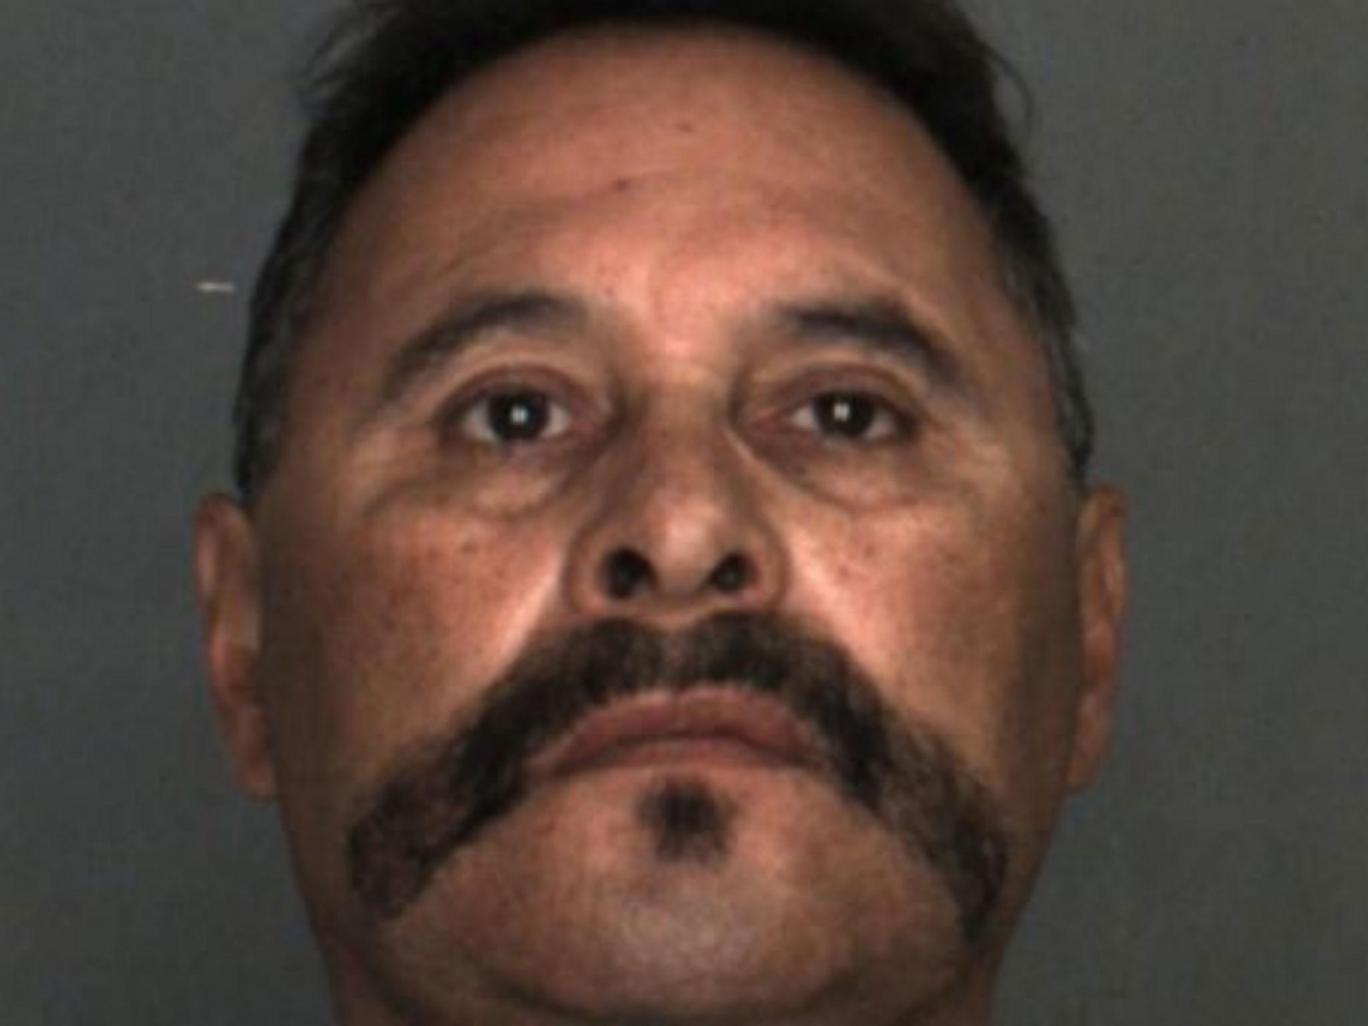 Man who repeatedly raped 3-year-old boy is sent to prison for 106 years